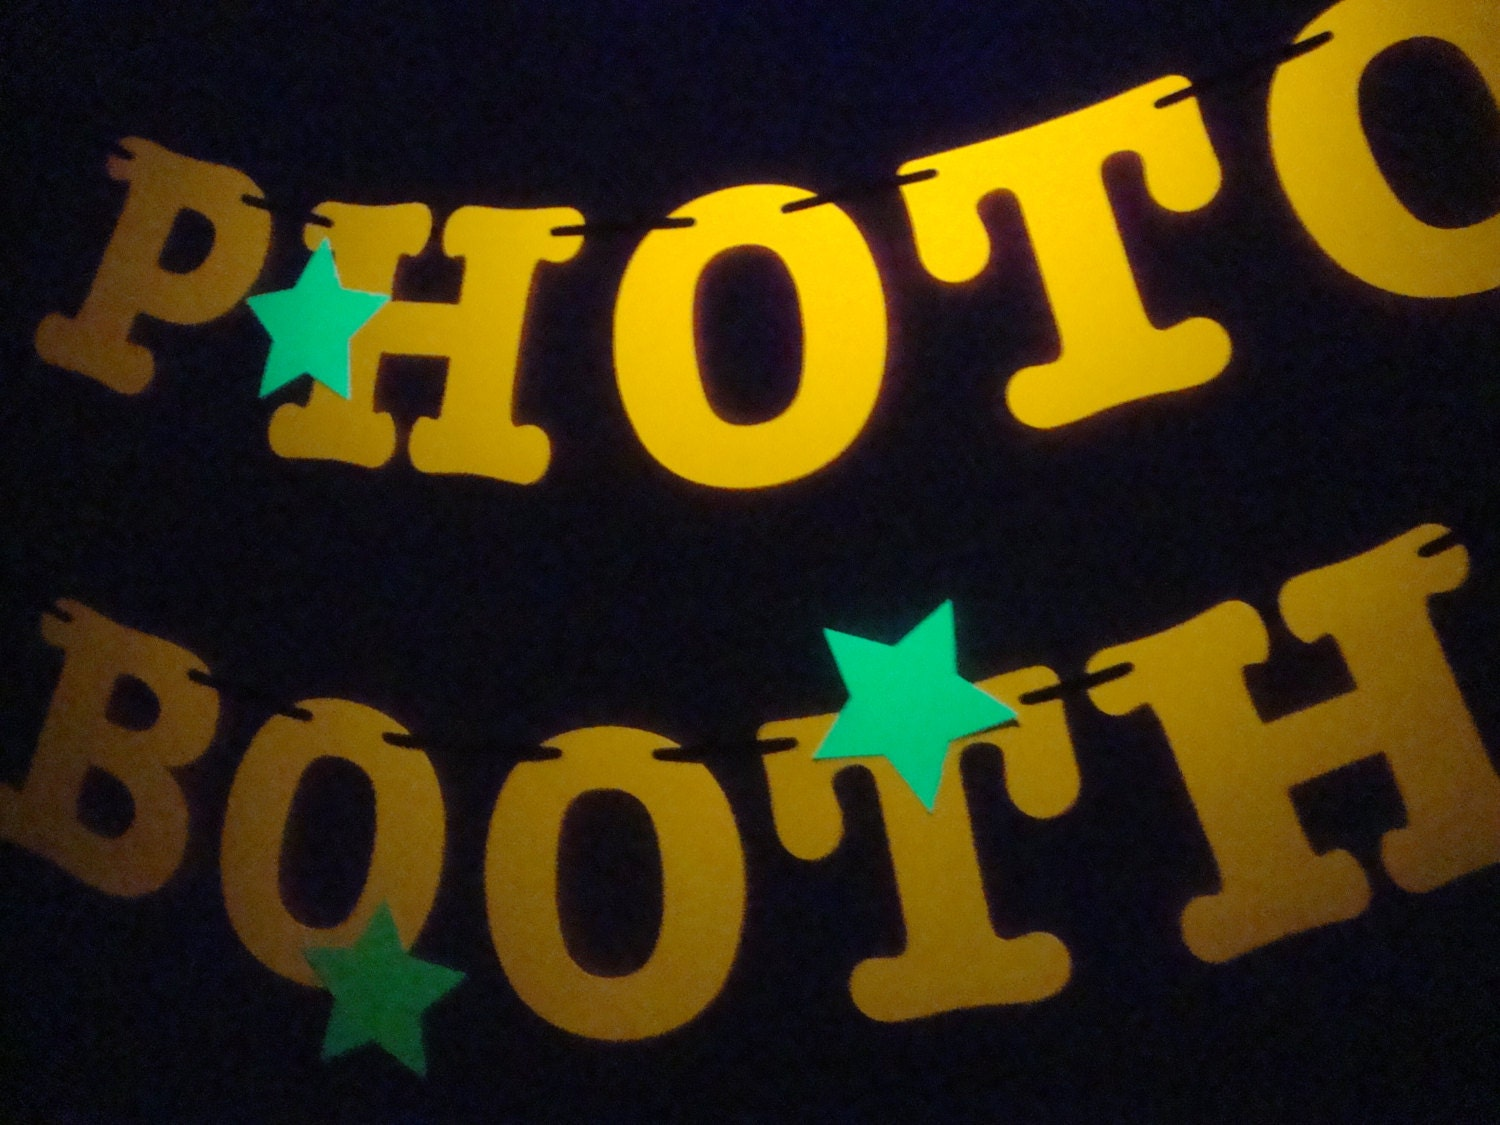 3.5 letters and stars in neon colors to spell PHOTO BOOTH